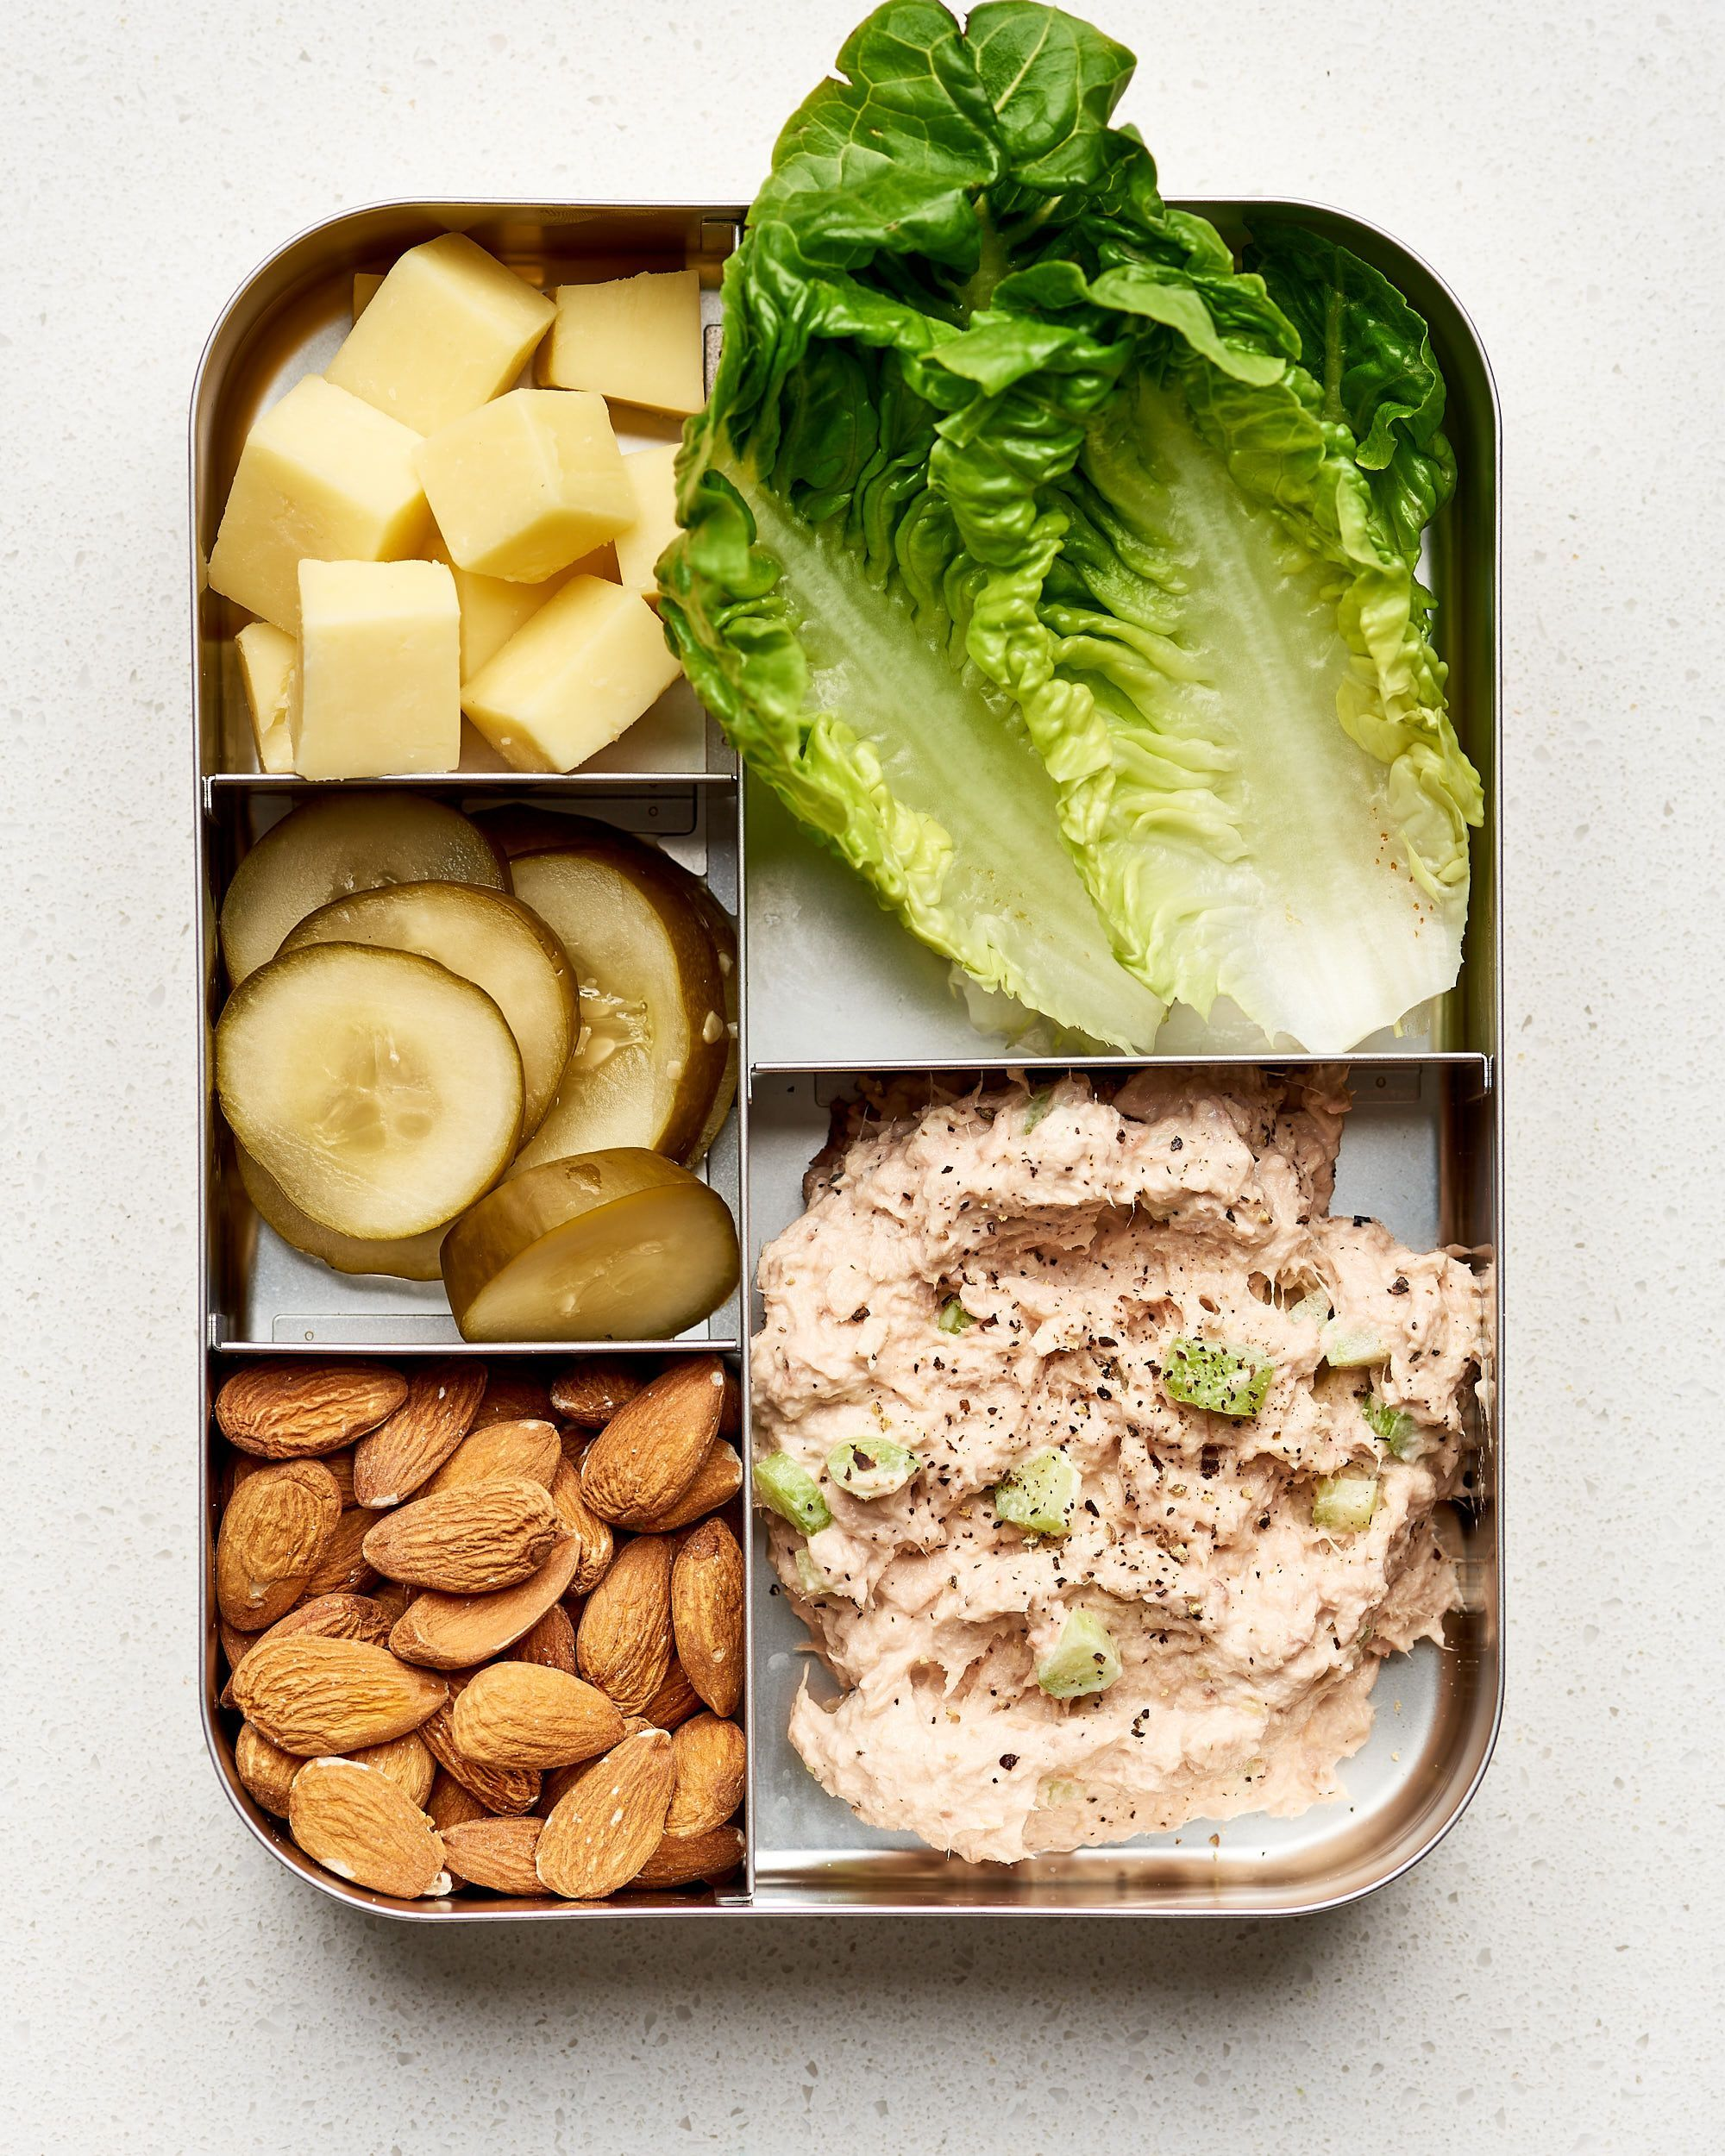 10 Easy Keto Lunchbox Ideas A Lunch Box For Everyone Keto Meal Prep Healthy Eating Healthy Lunch